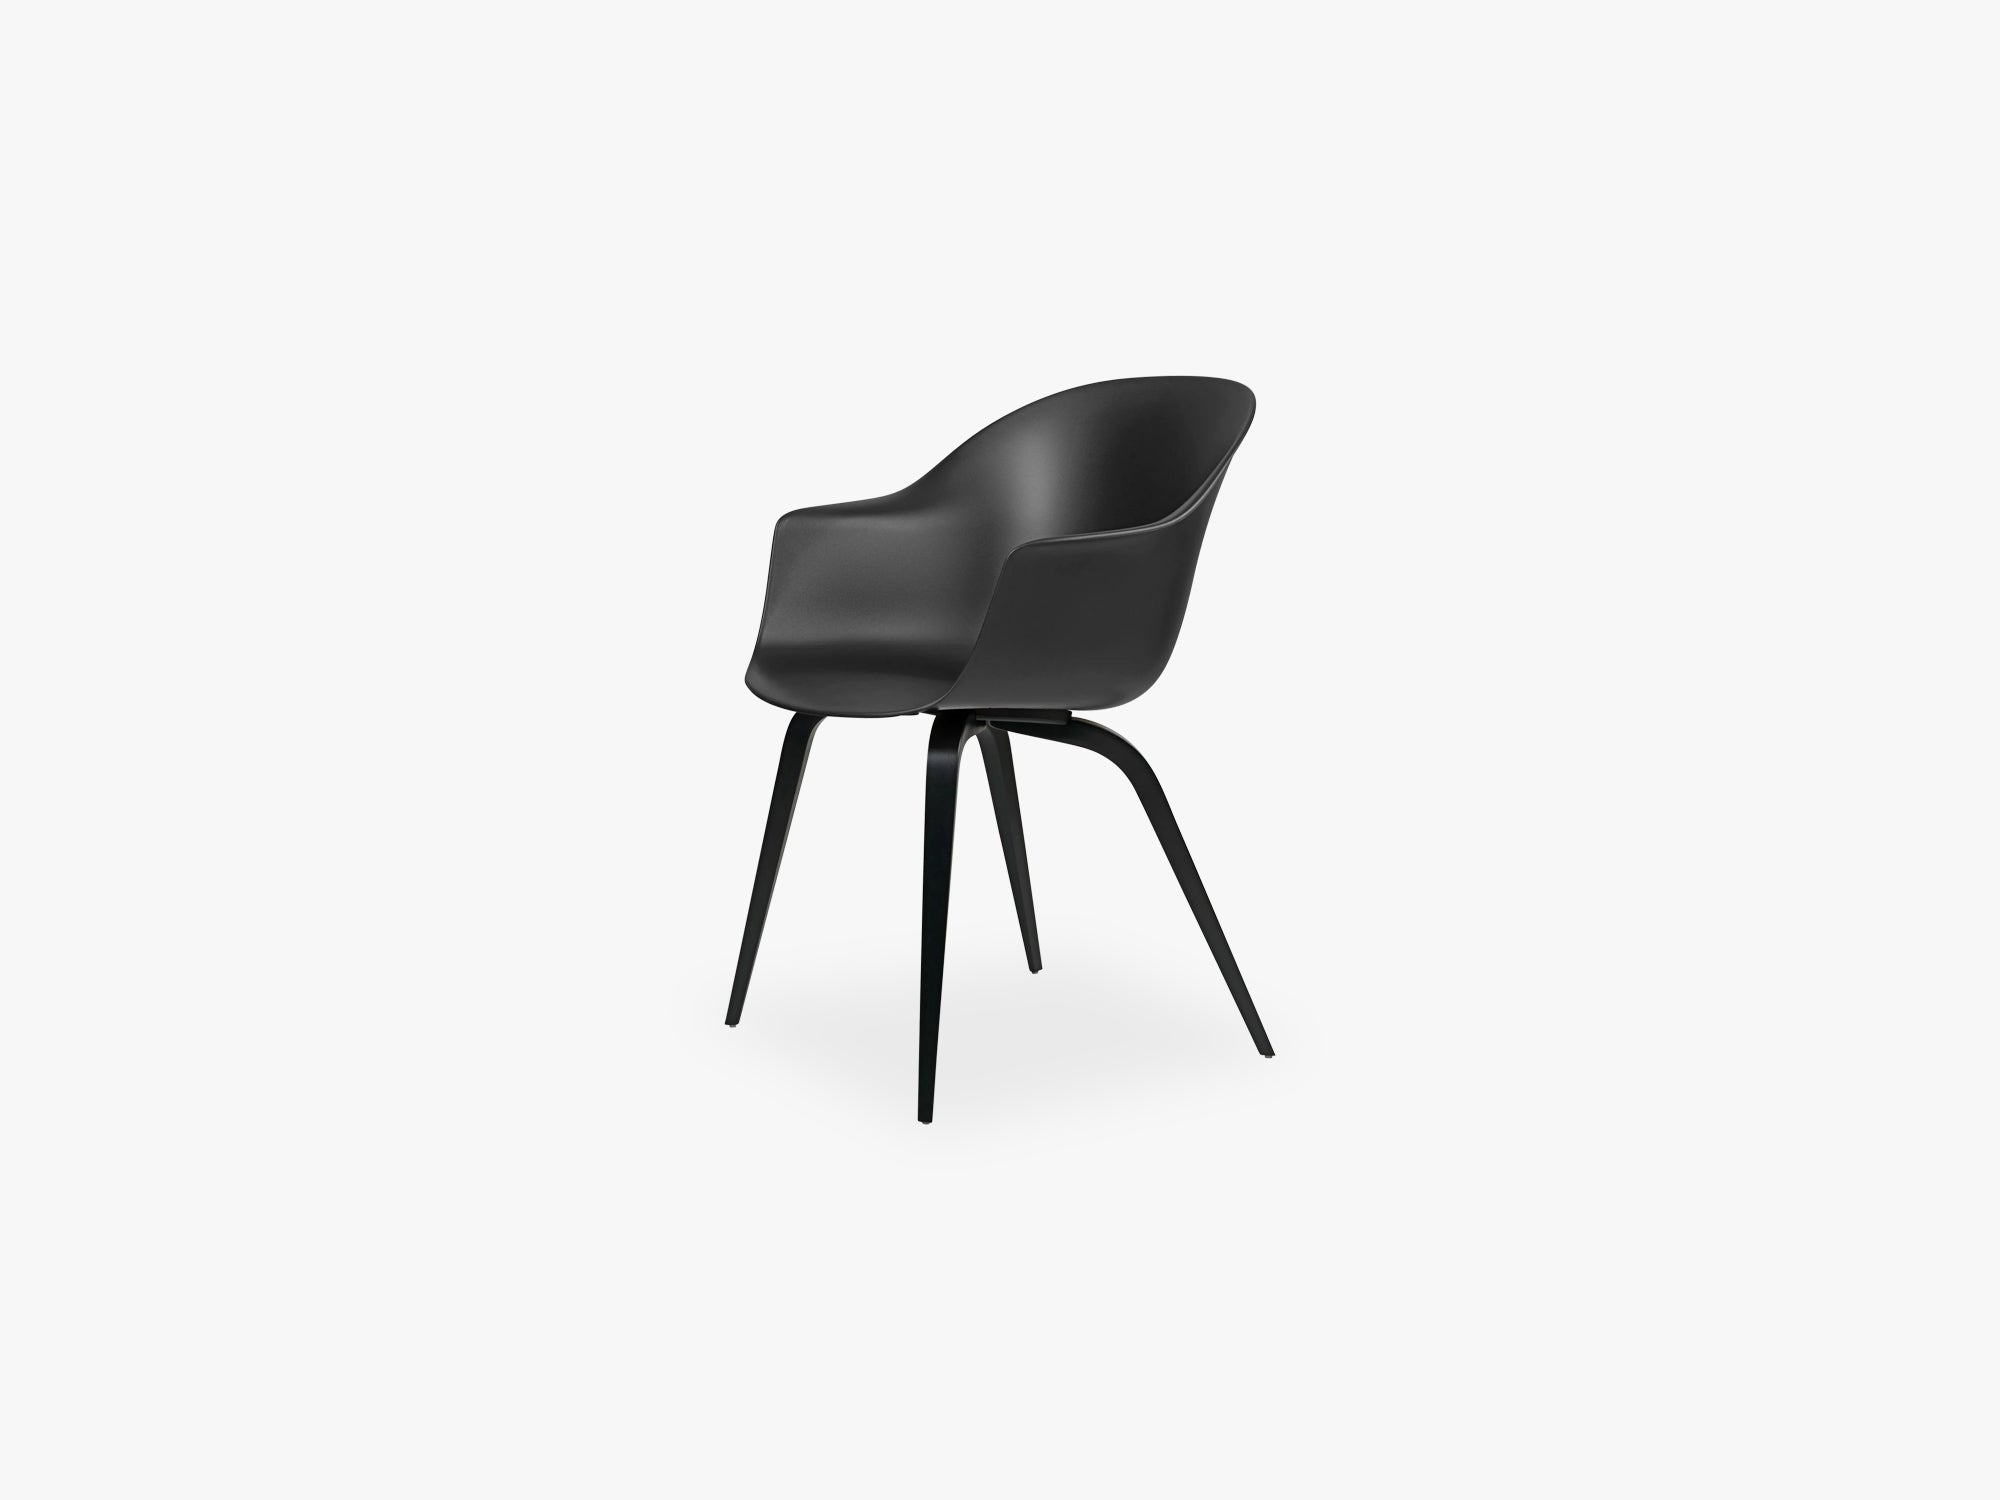 Bat Dining Chair - Skal m Wood base - Black Stained Beech Semi Matt, Black fra GUBI